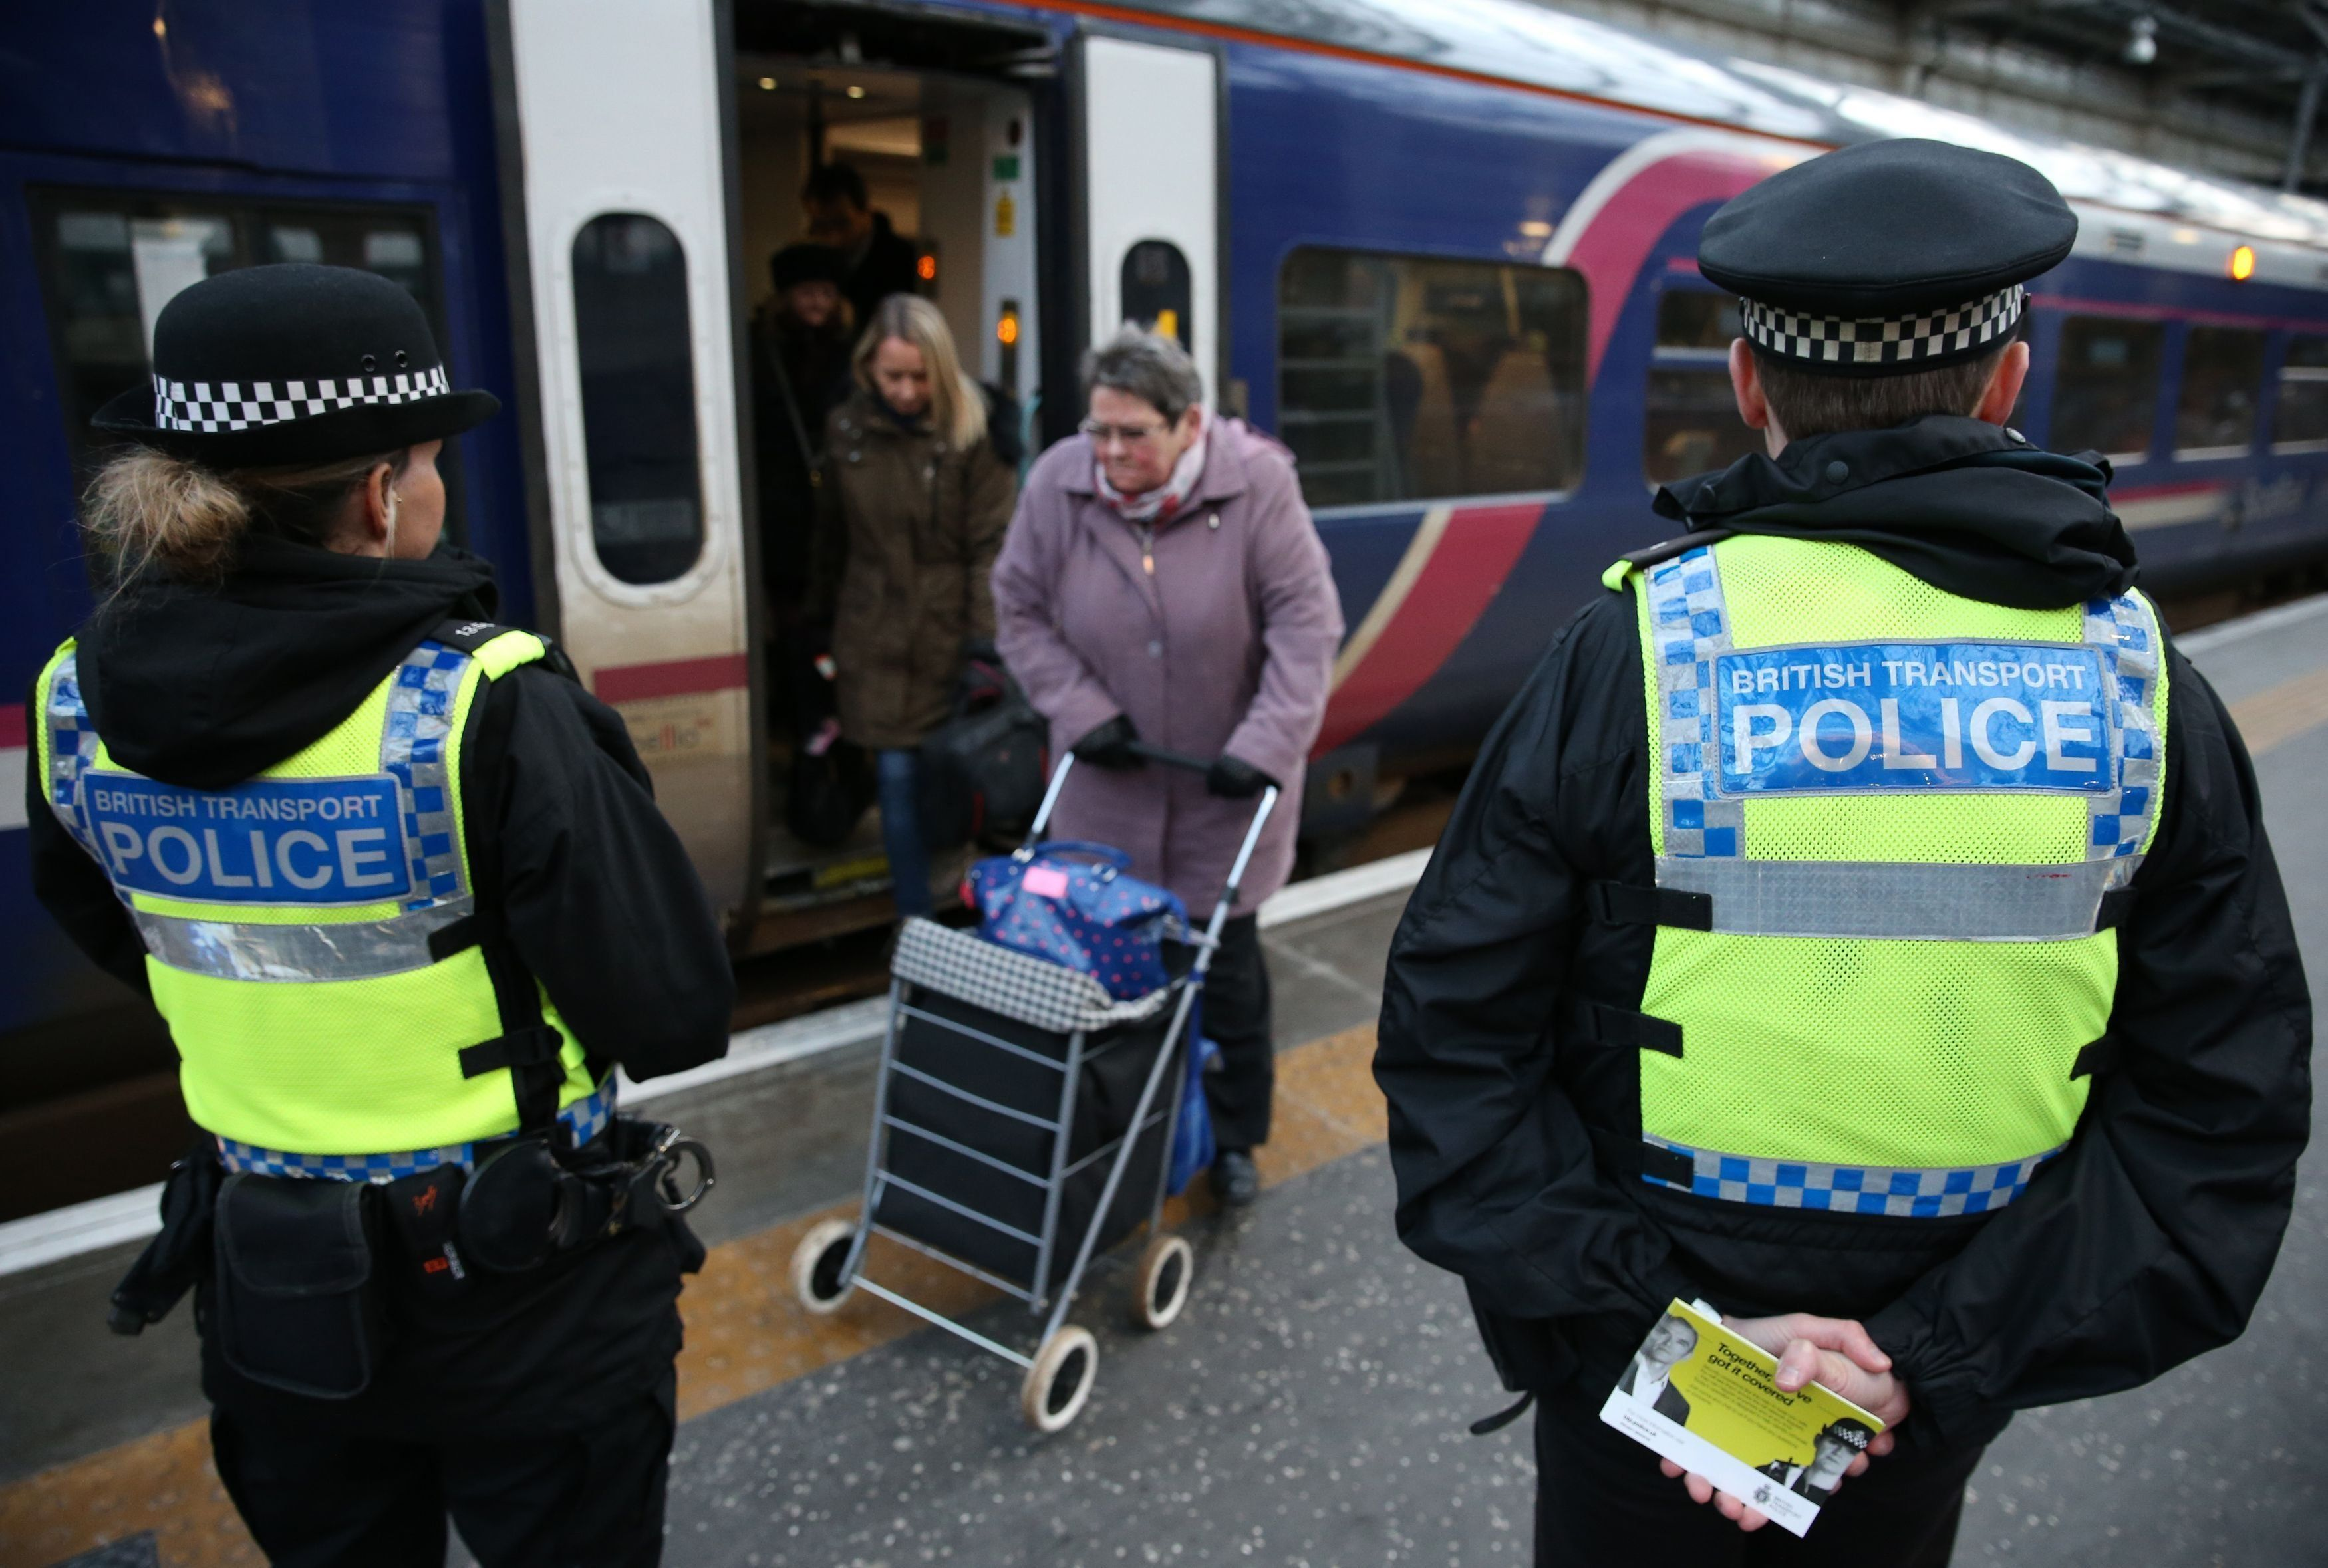 British Transport Police are searching for witnesses after a man groped two women on trains from Manchester